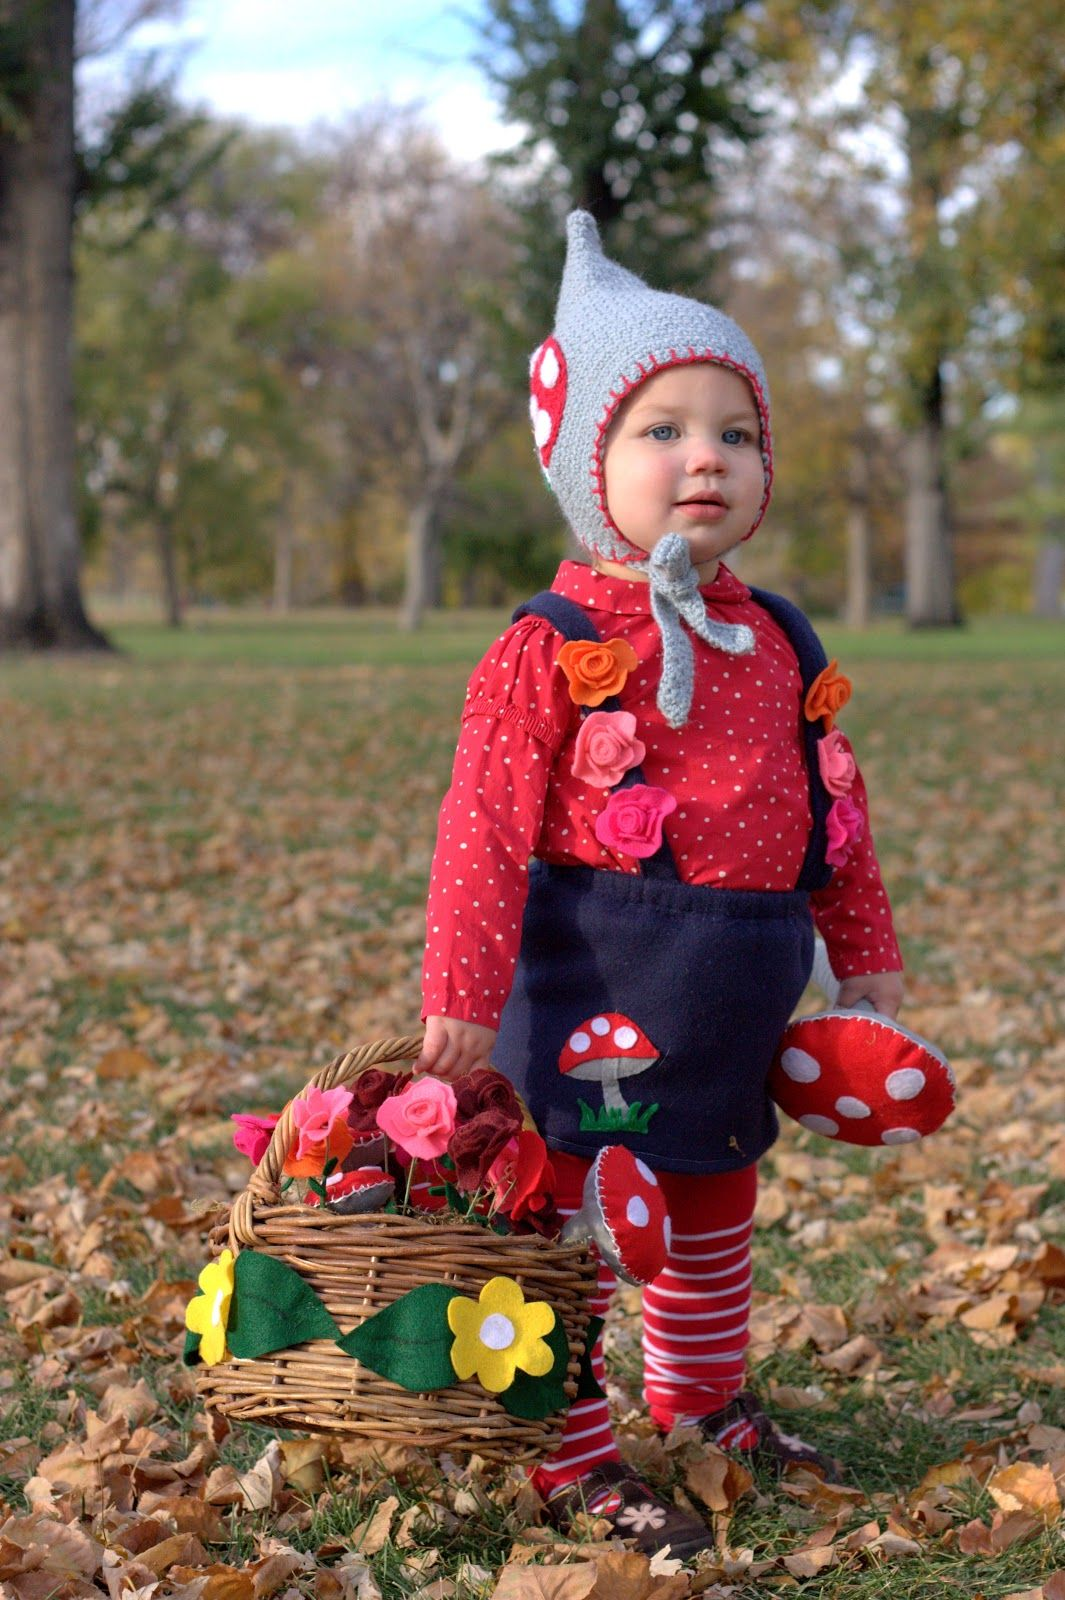 Garden Gnome costume  sc 1 st  Pinterest & Garden Gnome costume | Madelyn | Pinterest | Costumes Halloween ...